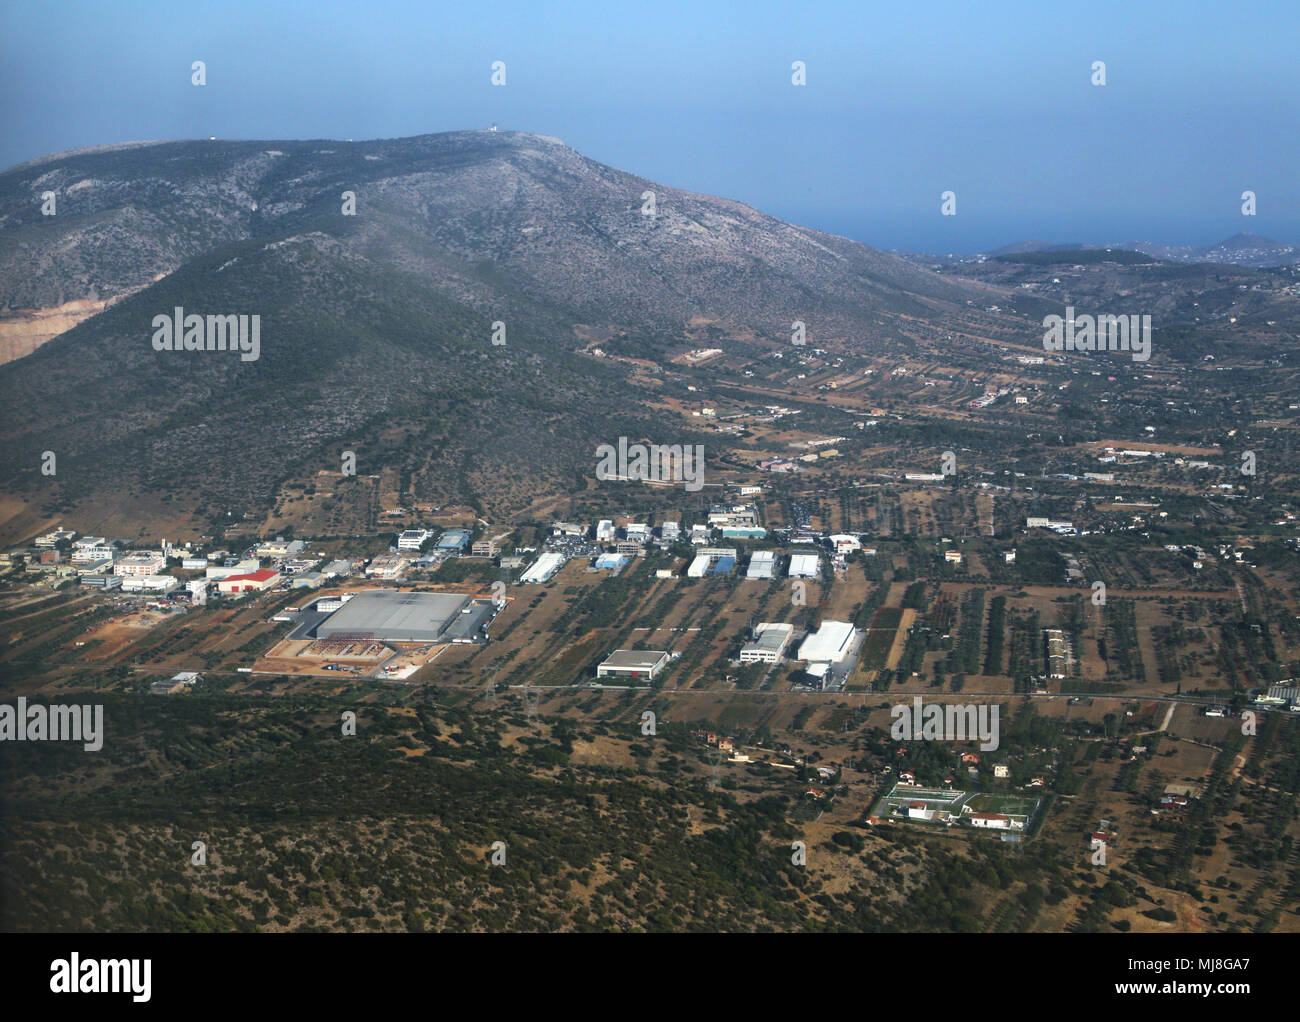 Aerial View of Greece from Aeroplane Window - Stock Image